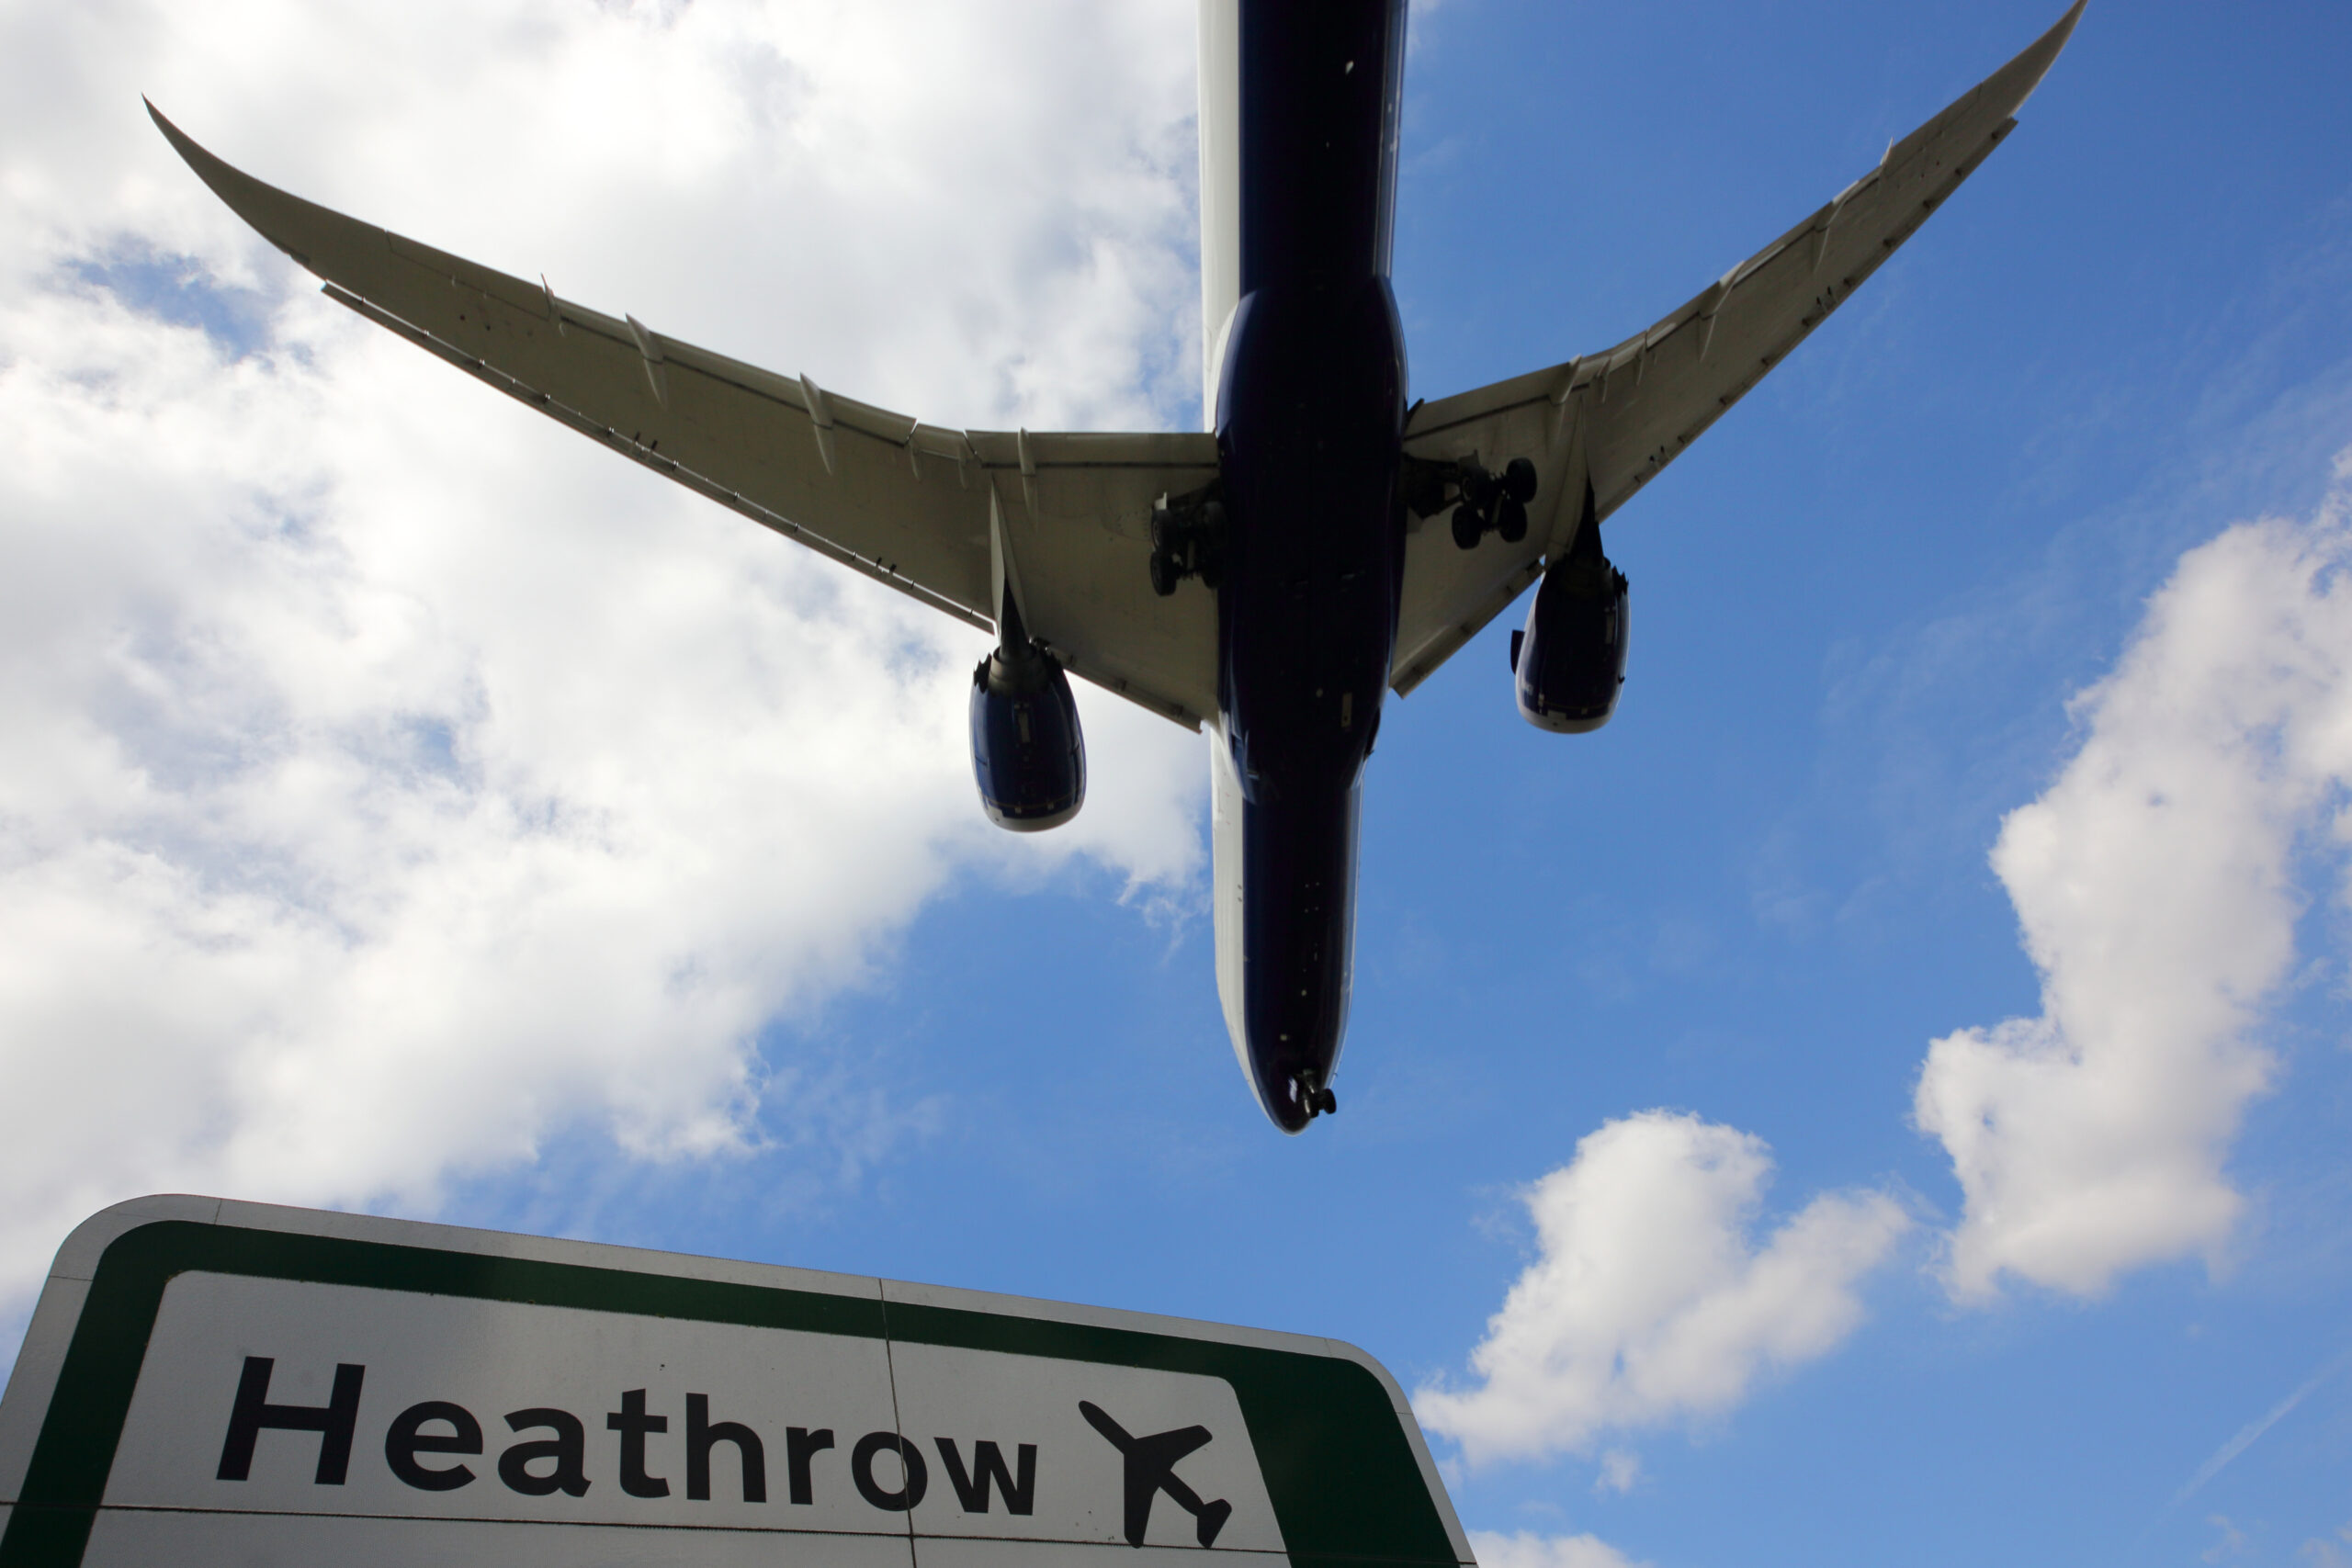 Heathrow Airport sign and plane